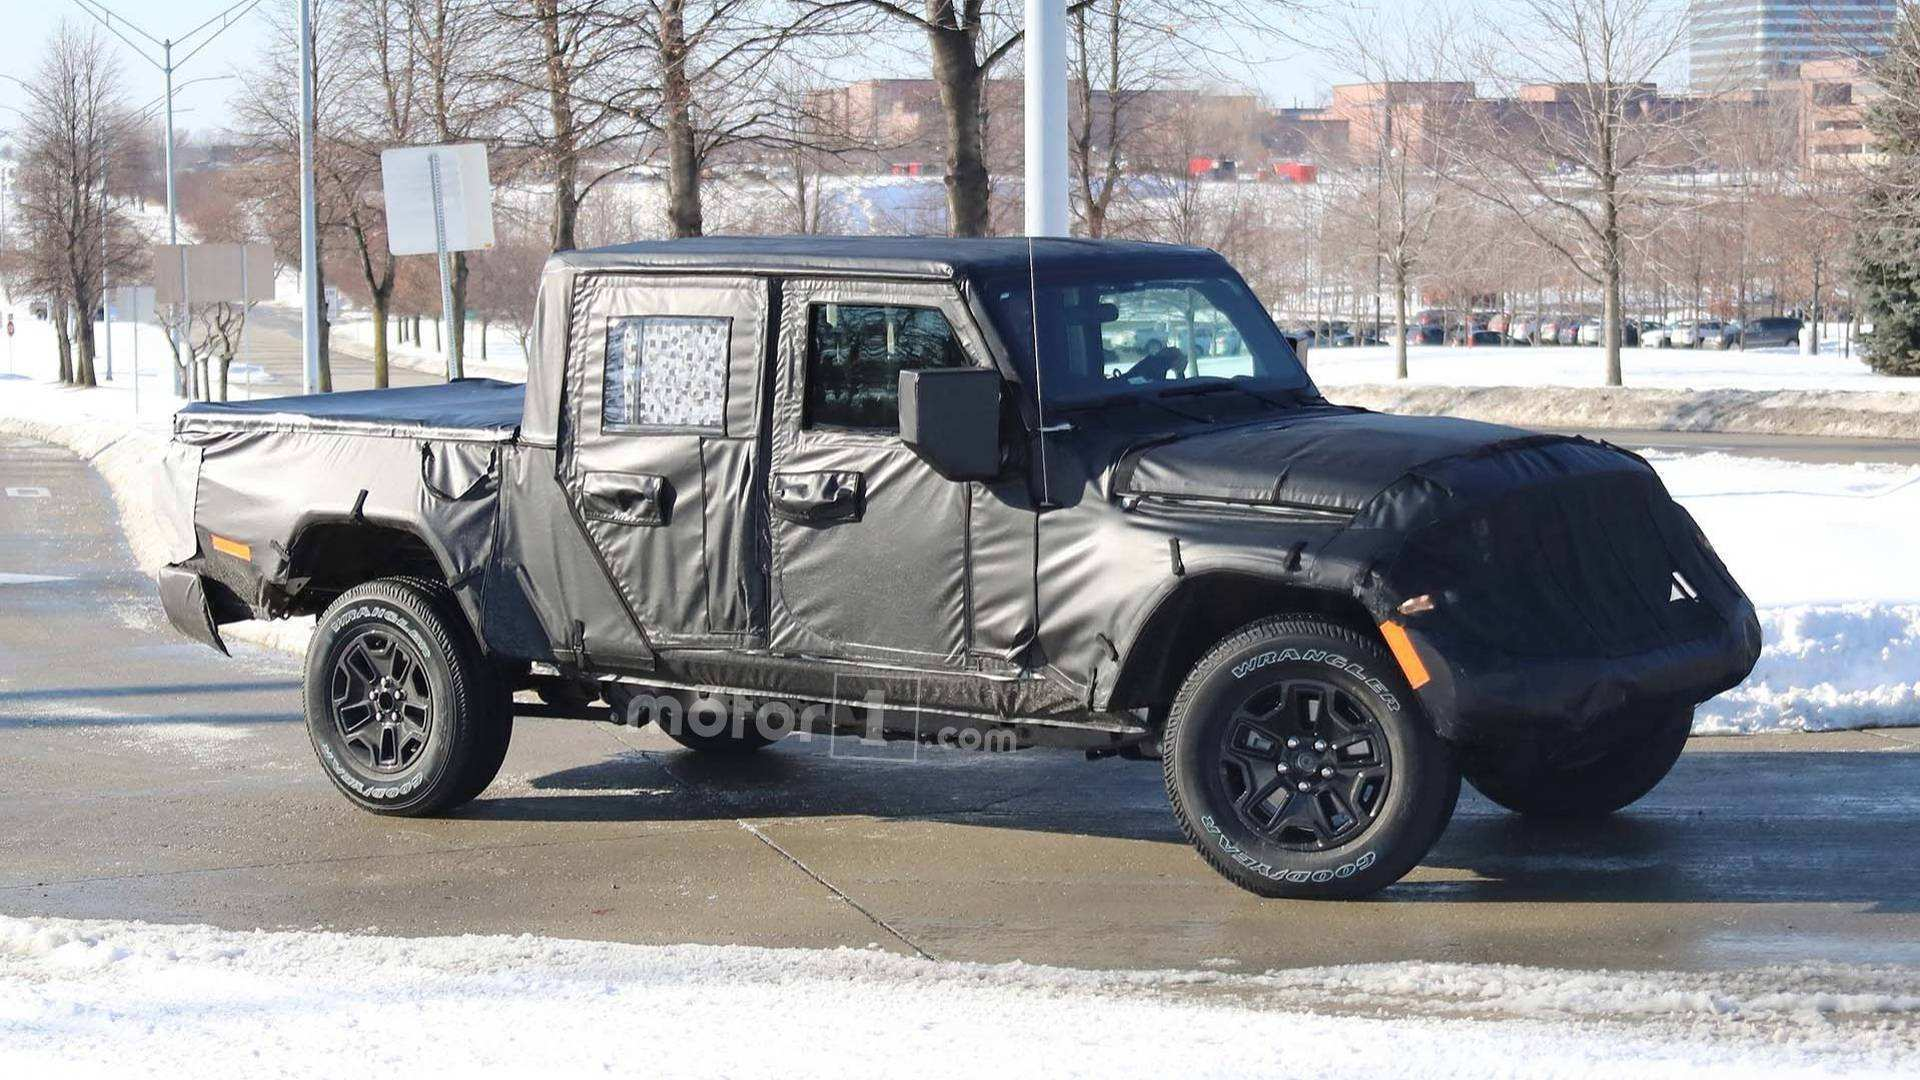 47 All New 2019 Jeep Tj Pickup Overview by 2019 Jeep Tj Pickup